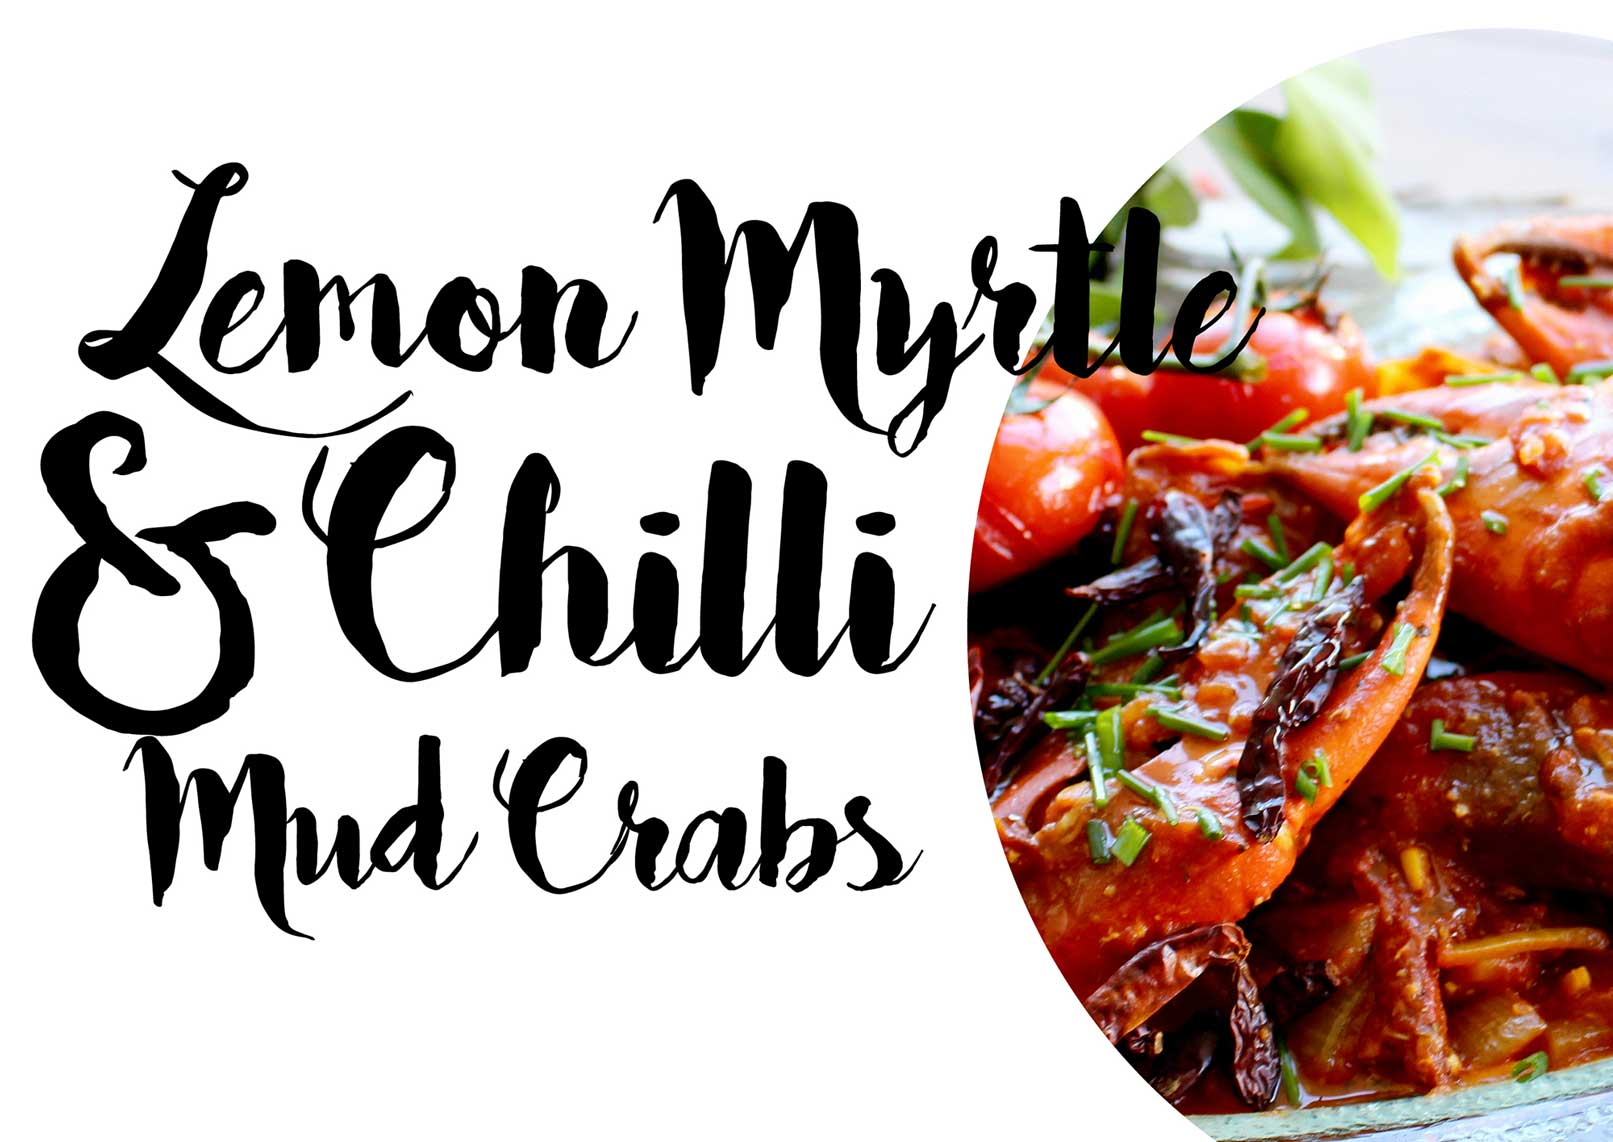 Lemon Myrtle & Chilli Mud Crabs